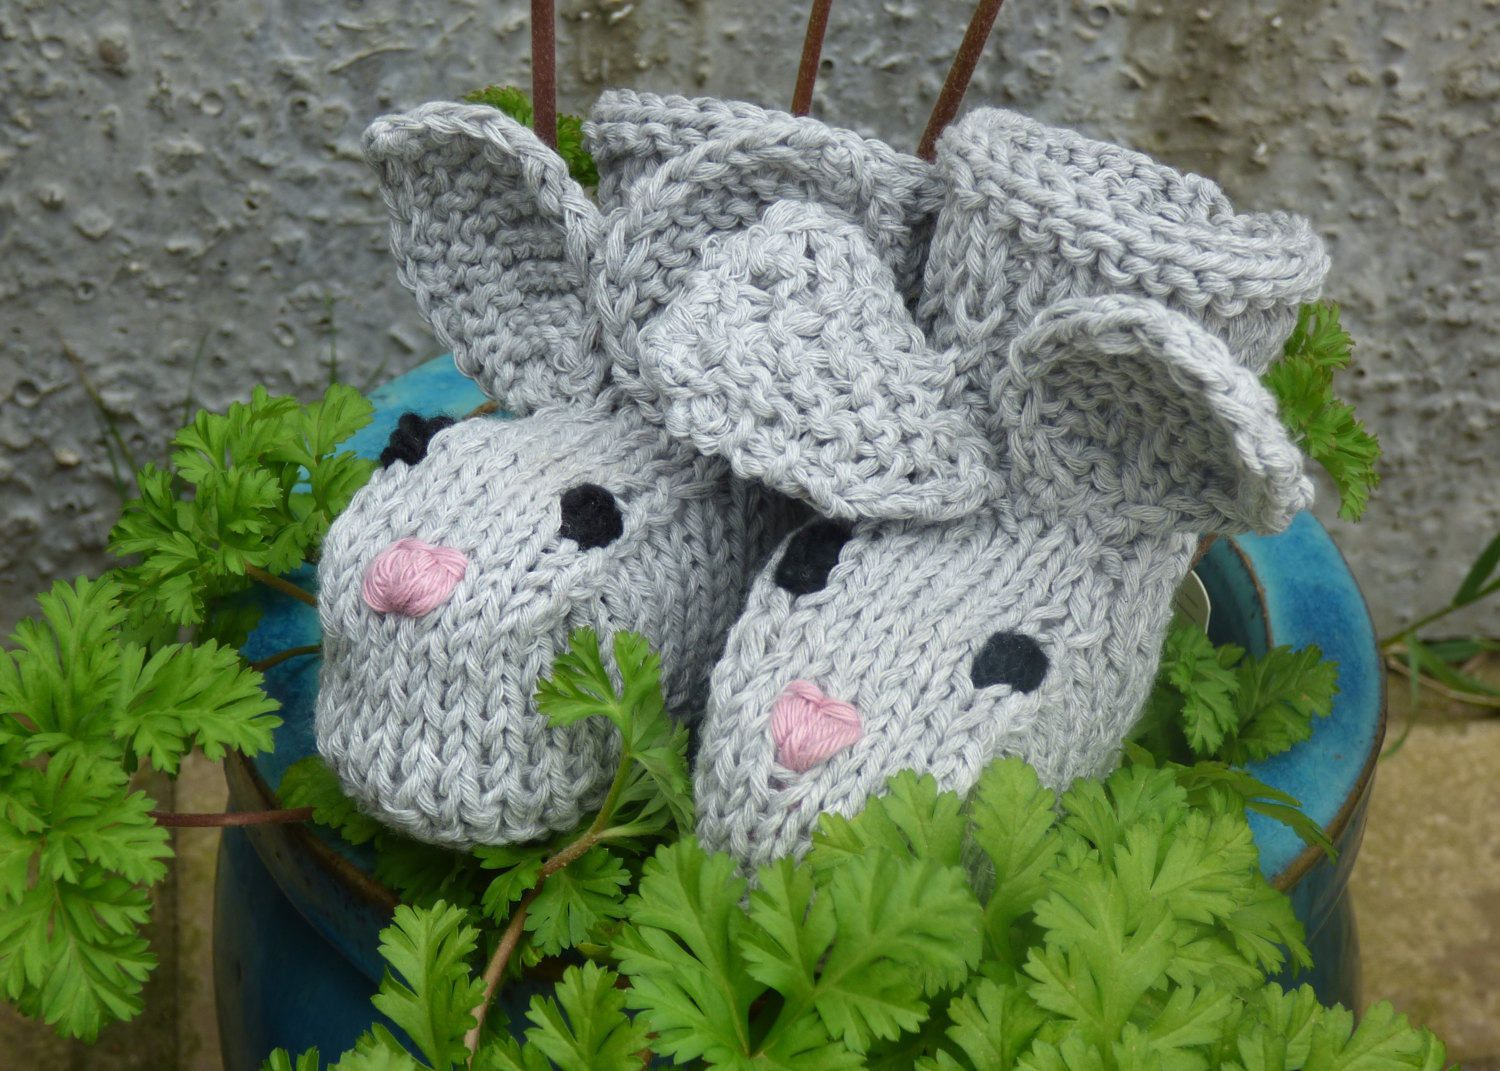 Baby easter knitting pattern baby bunny booties 2 sizes newborn baby easter knitting pattern baby bunny booties 2 sizes newborn 12 mths negle Image collections